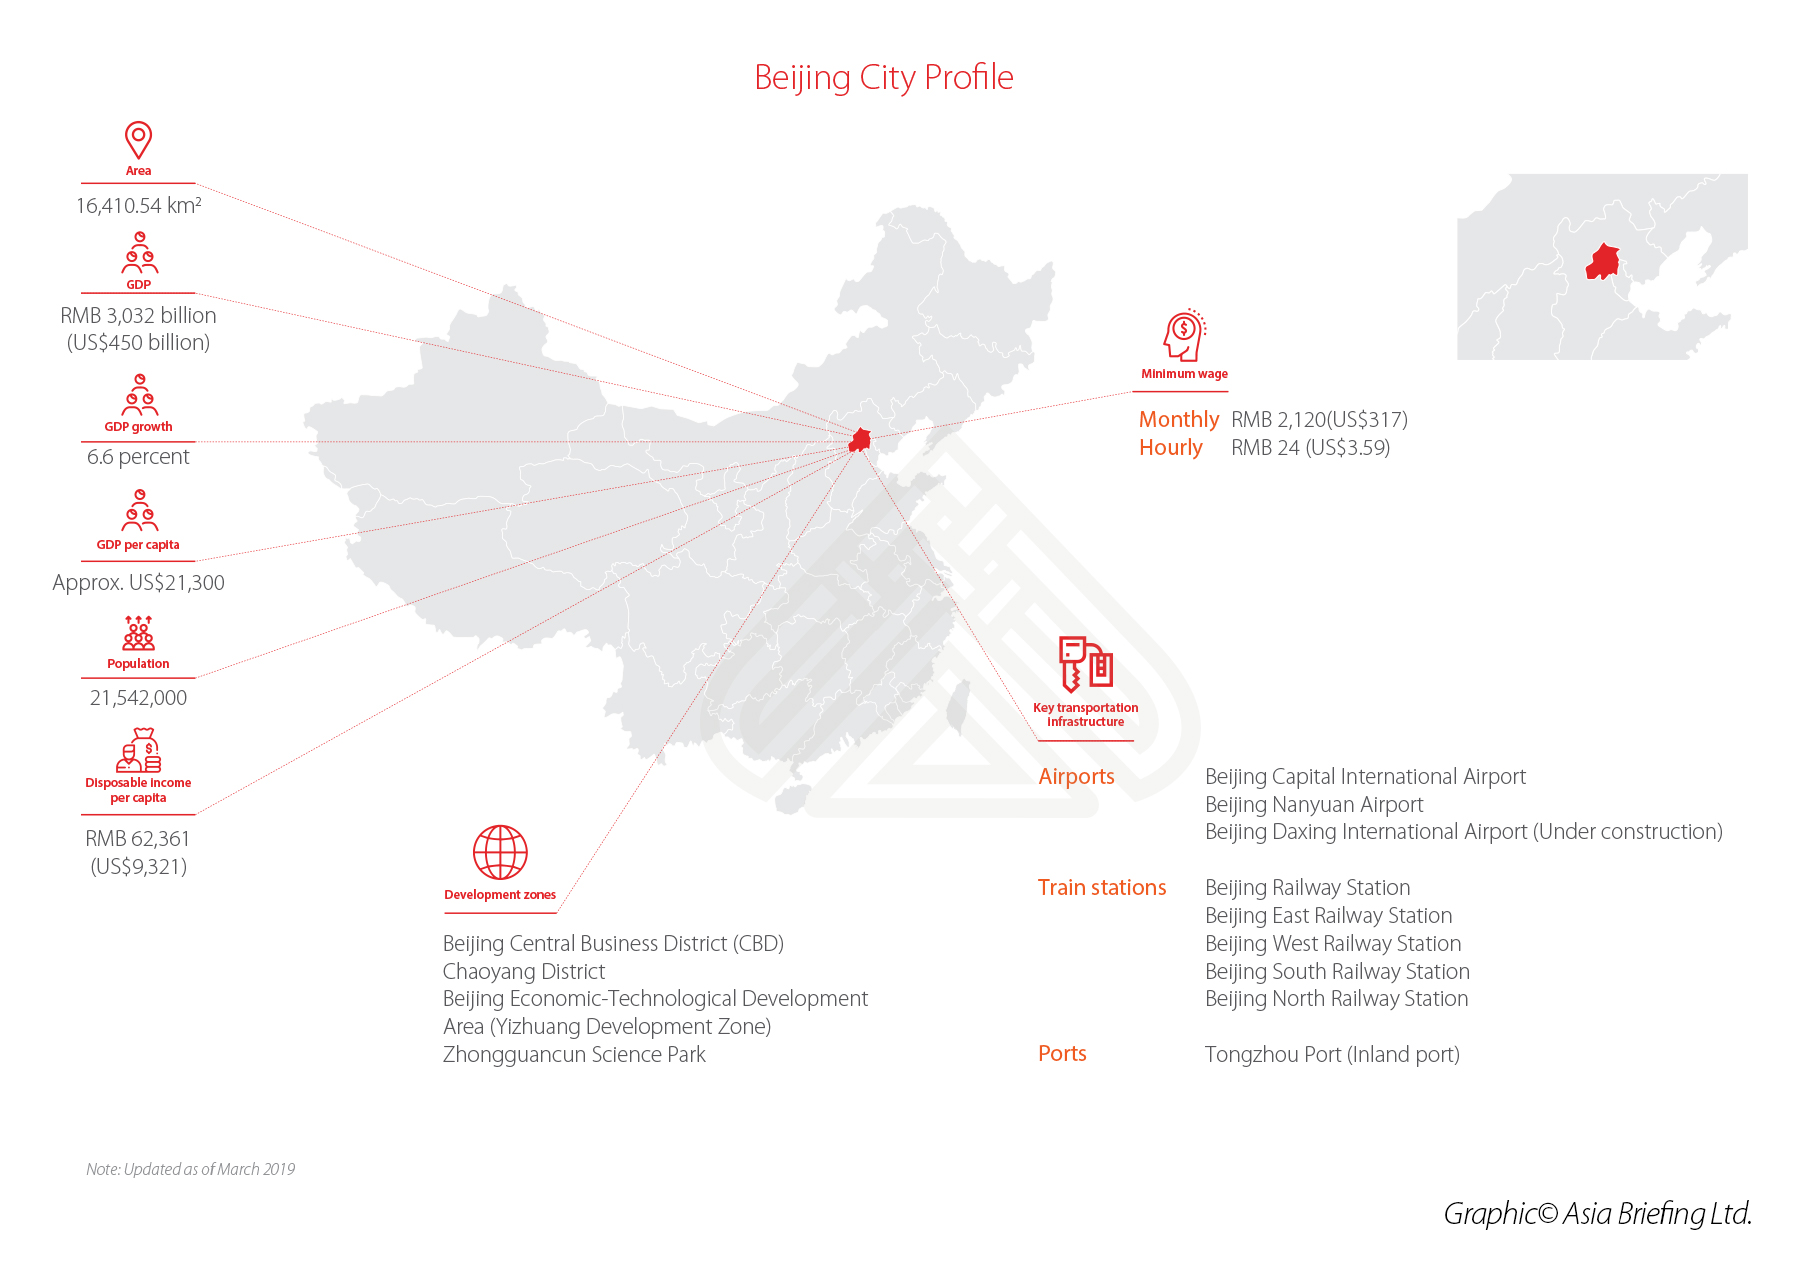 Beijing City Profile